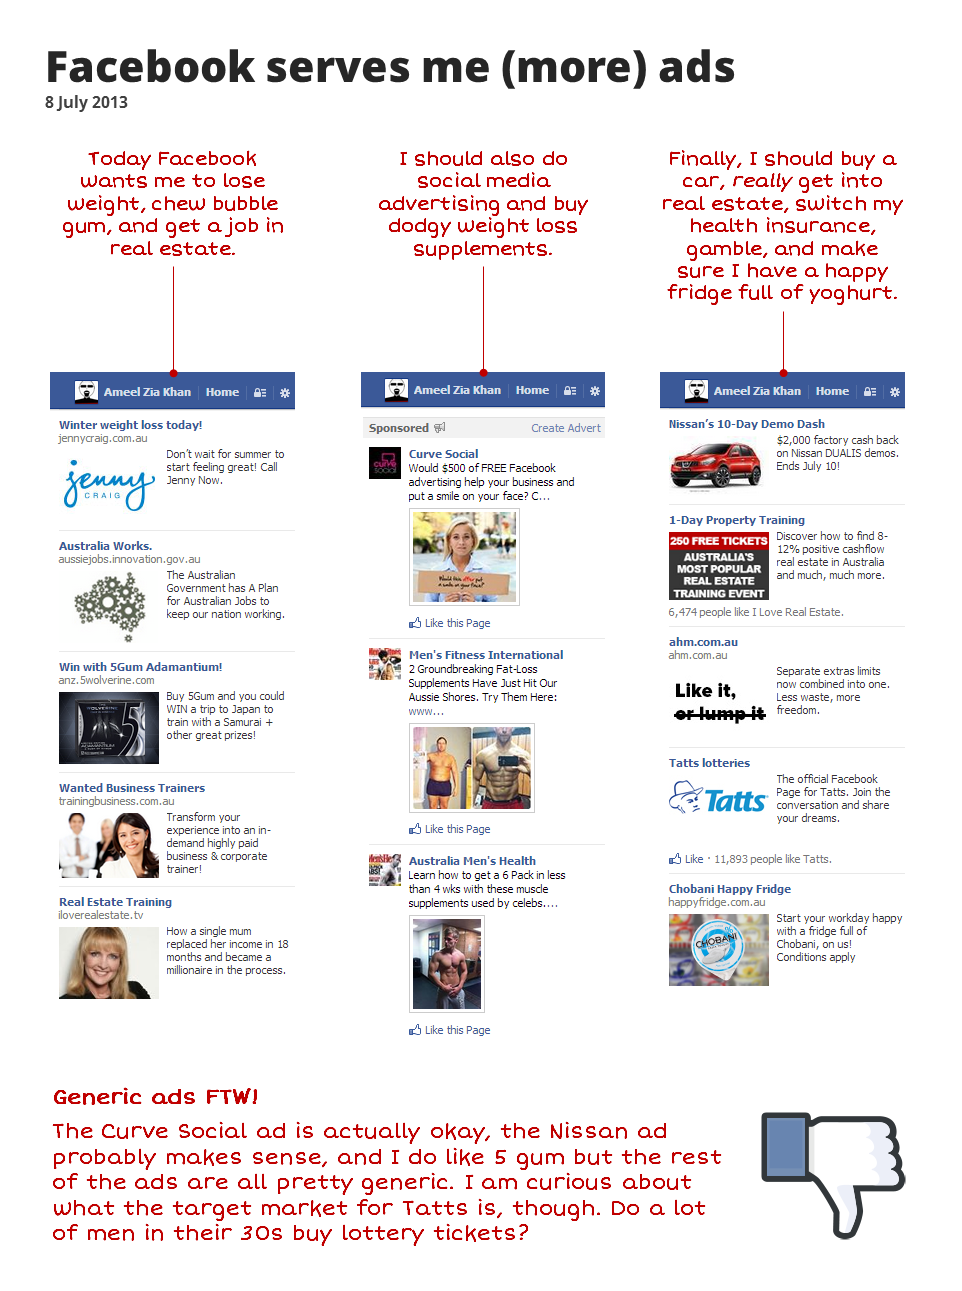 Facebook serves me ads - 2013-07-08.png